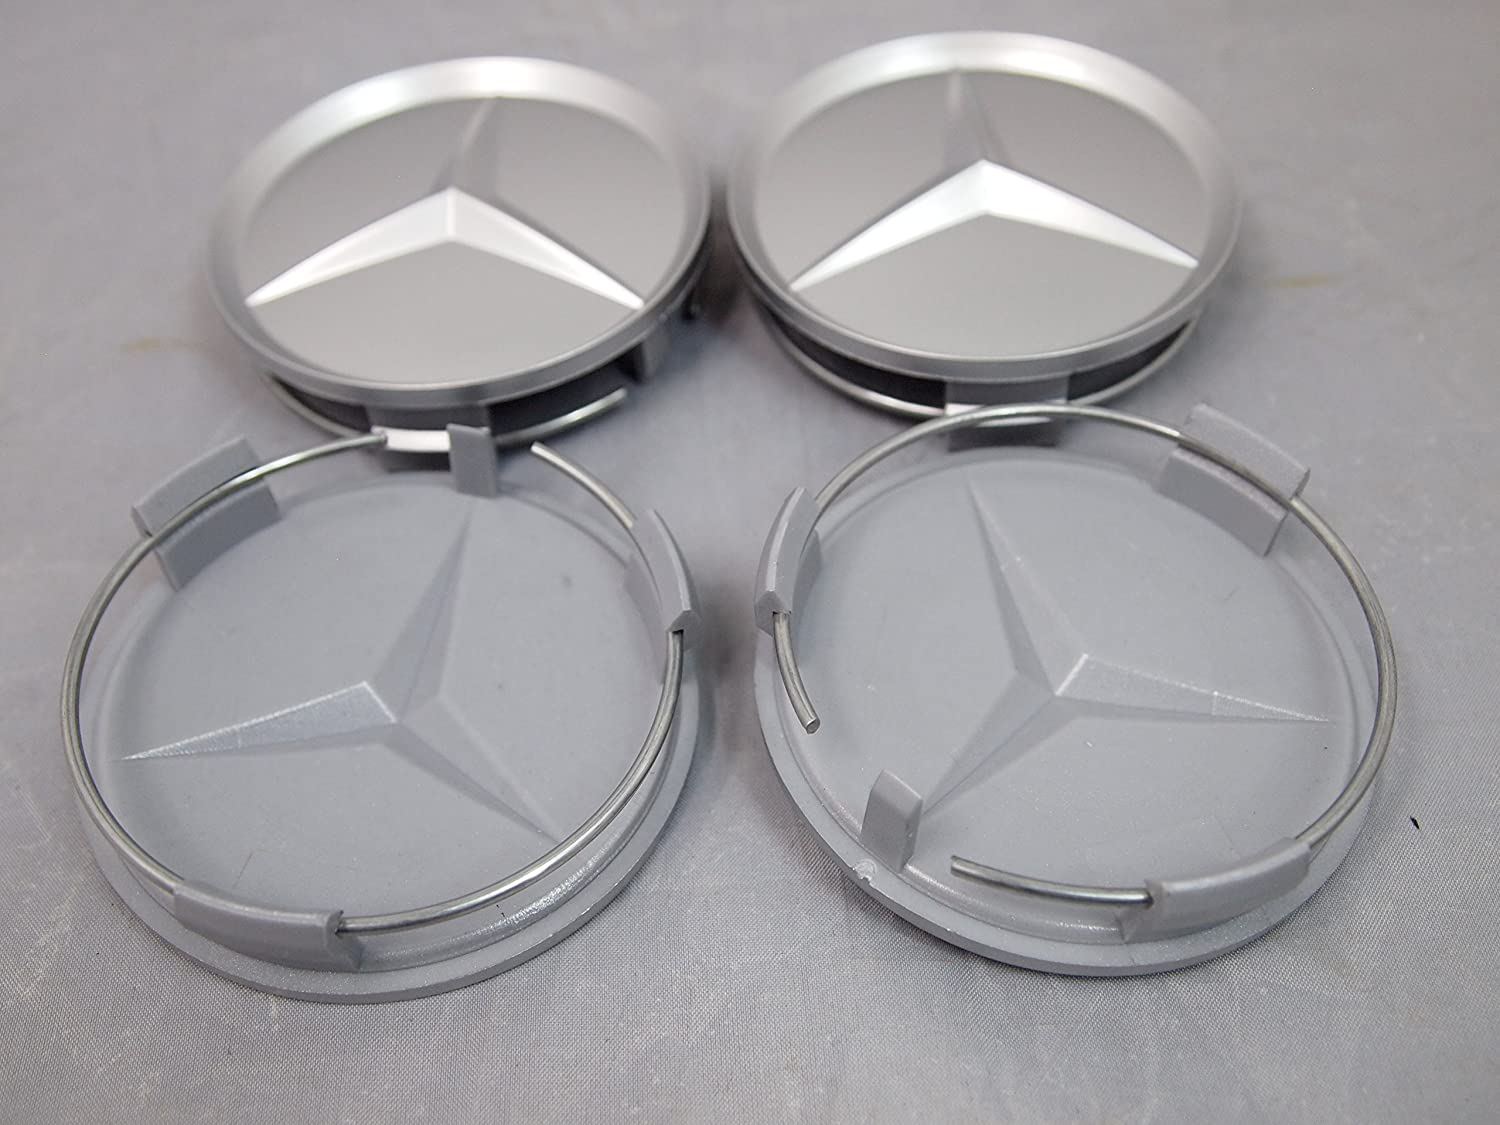 CHANONE 4Pcs Wheel Center Cap for Mercedes Benz Accessories for 75mm MB Rims Car Accessory Silver AMG Logo Emblem Covers